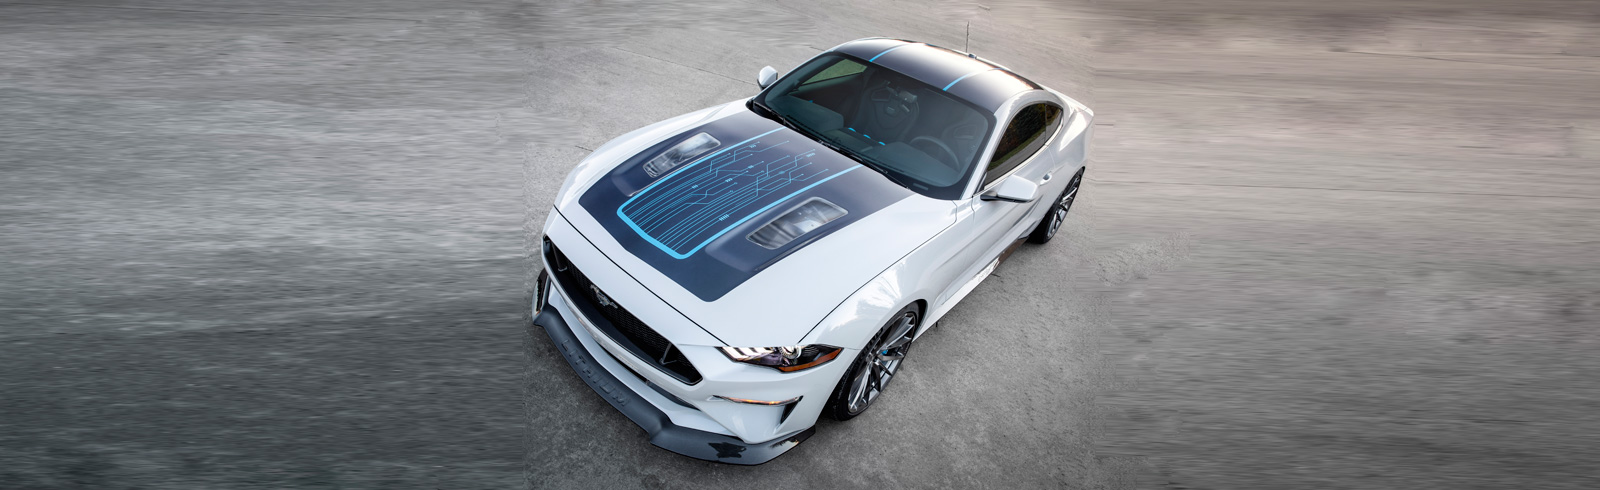 Ford and Webasto showcase the Mustang Lithium BEV with a 6-speed manual gearbox